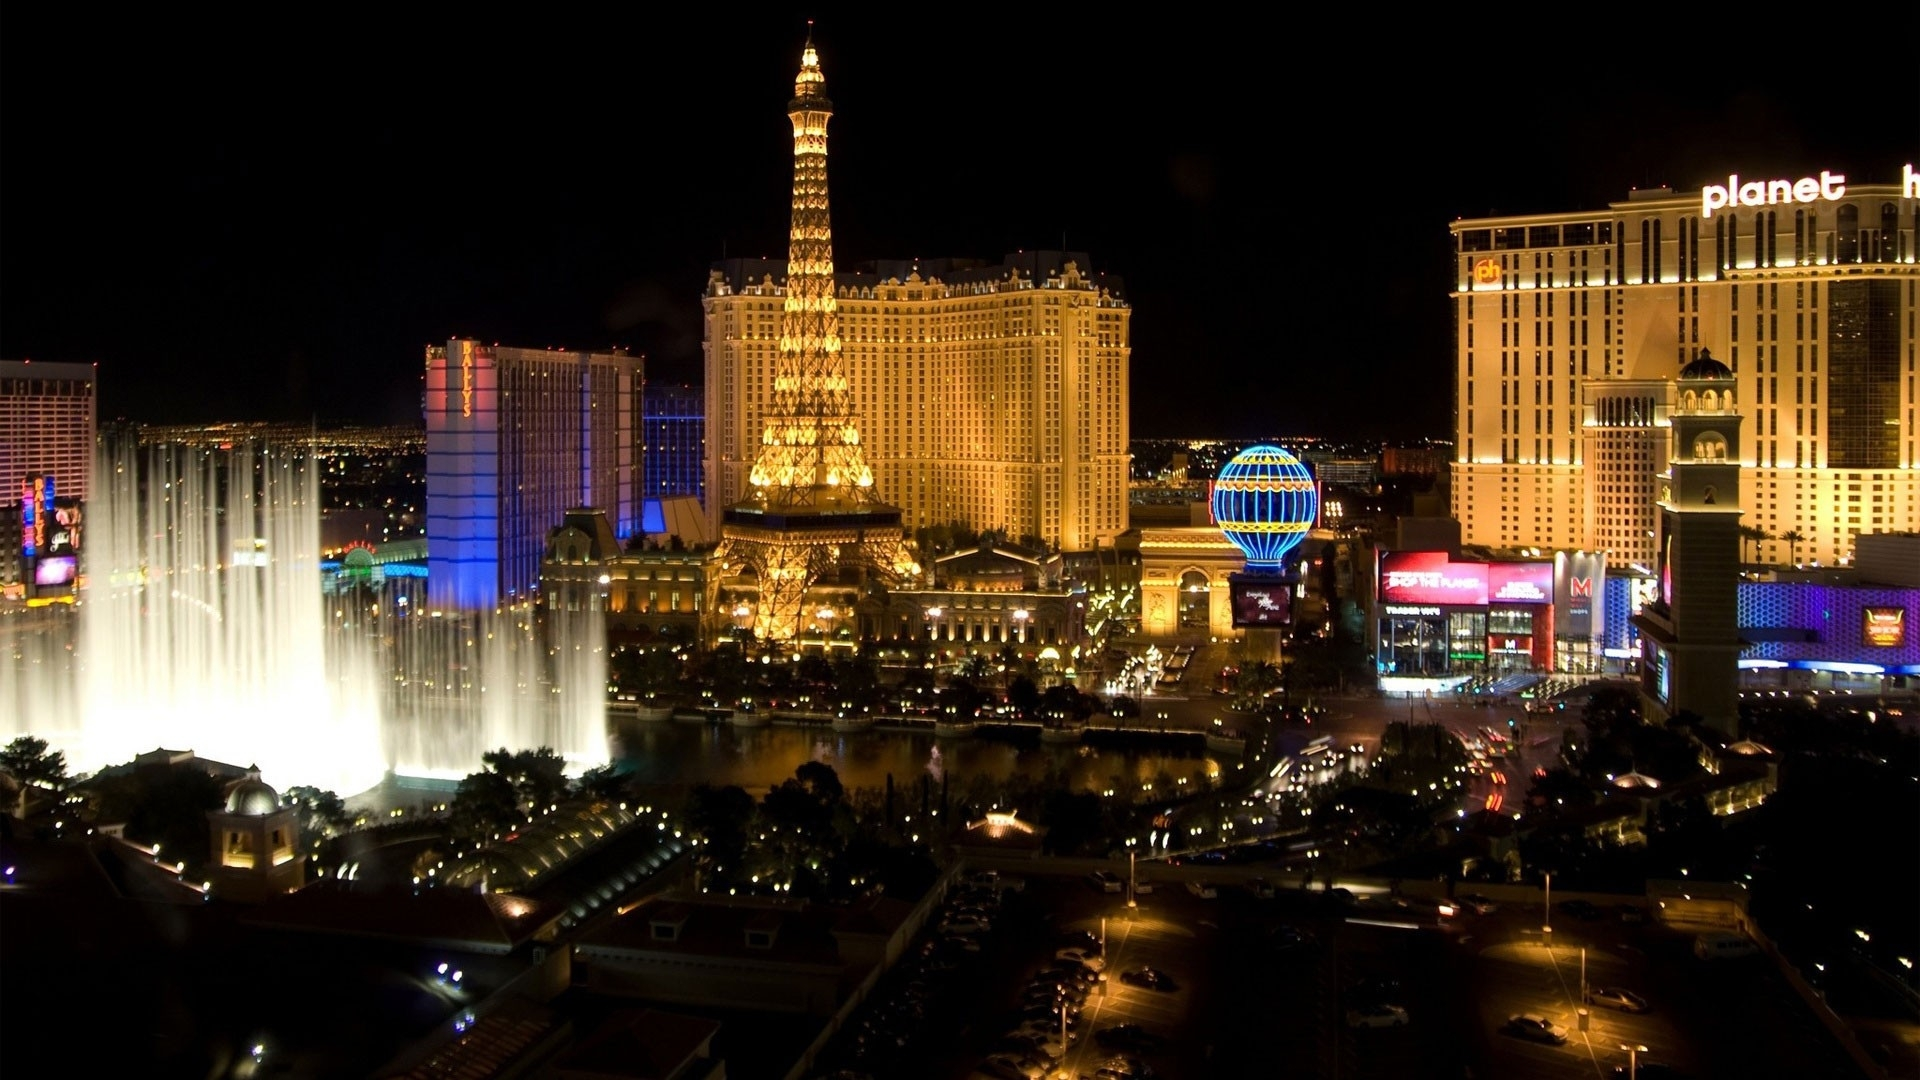 cityscapes_photography_las_vegas_town_town_view_night_view_1920x1080_wallpaper_Wallpaper_1920x1080_www.wall321.com.jpg